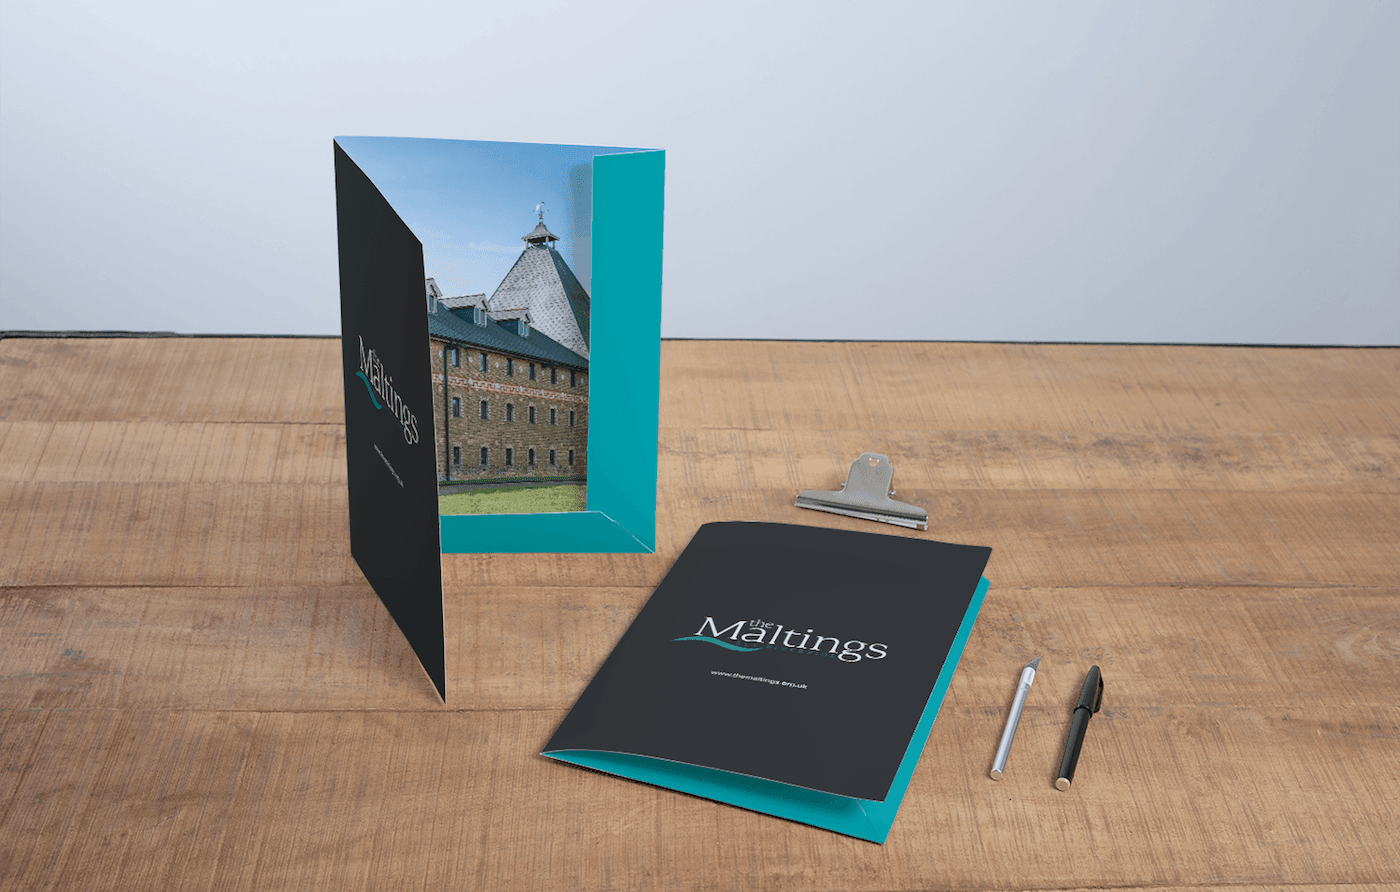 The Maltings ely folder